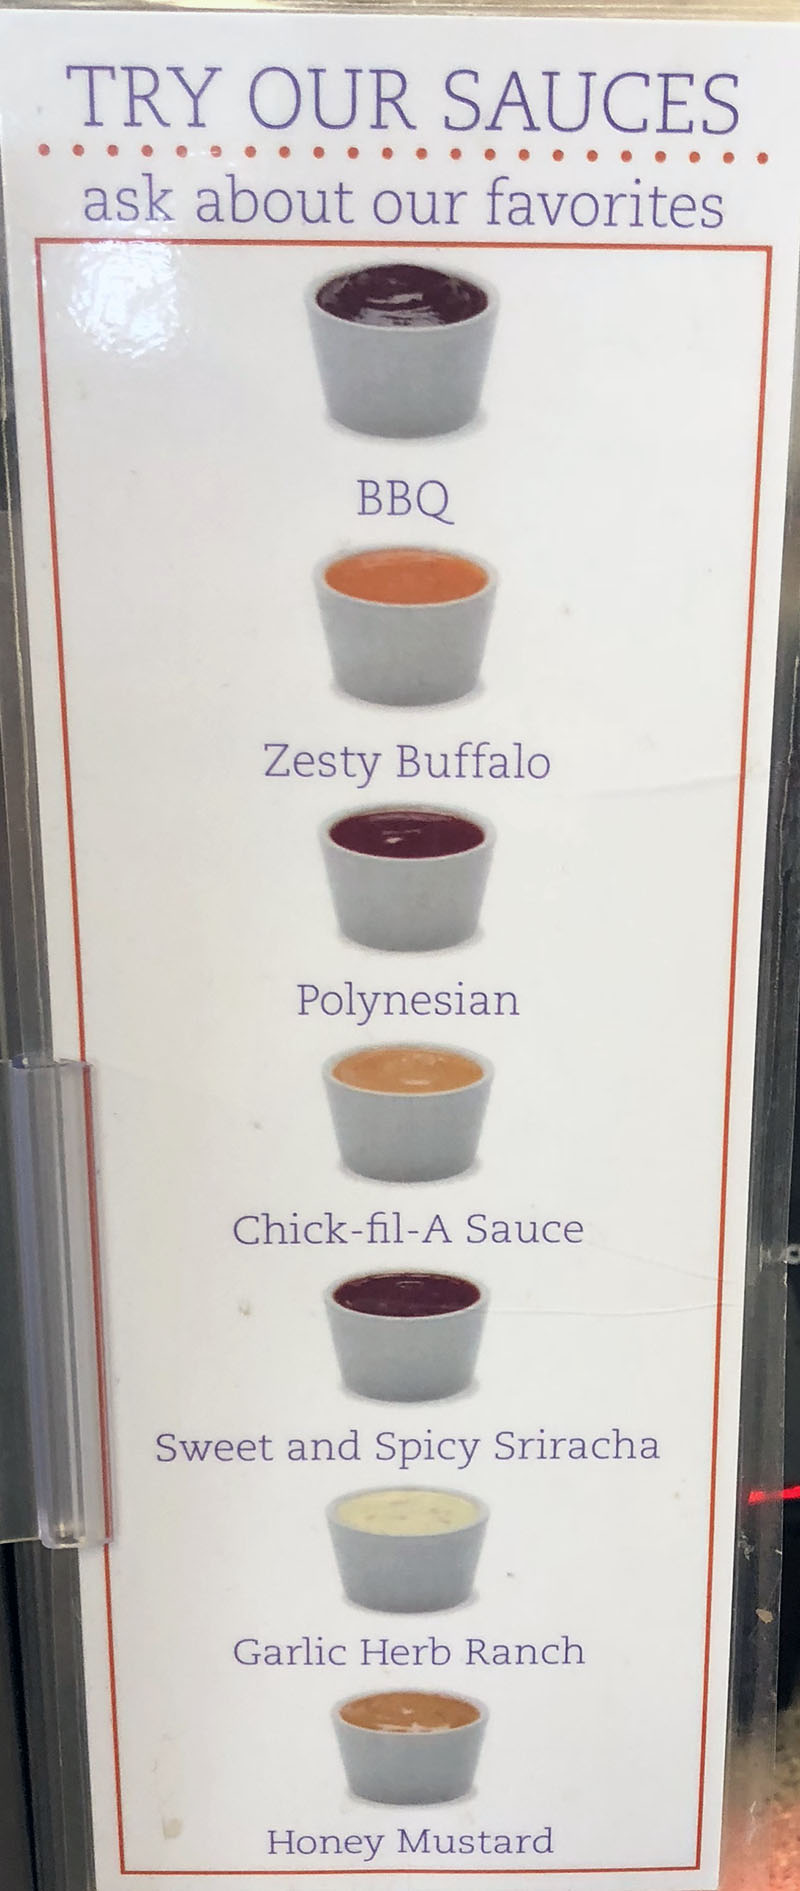 Chick-fil-A menu - sauces